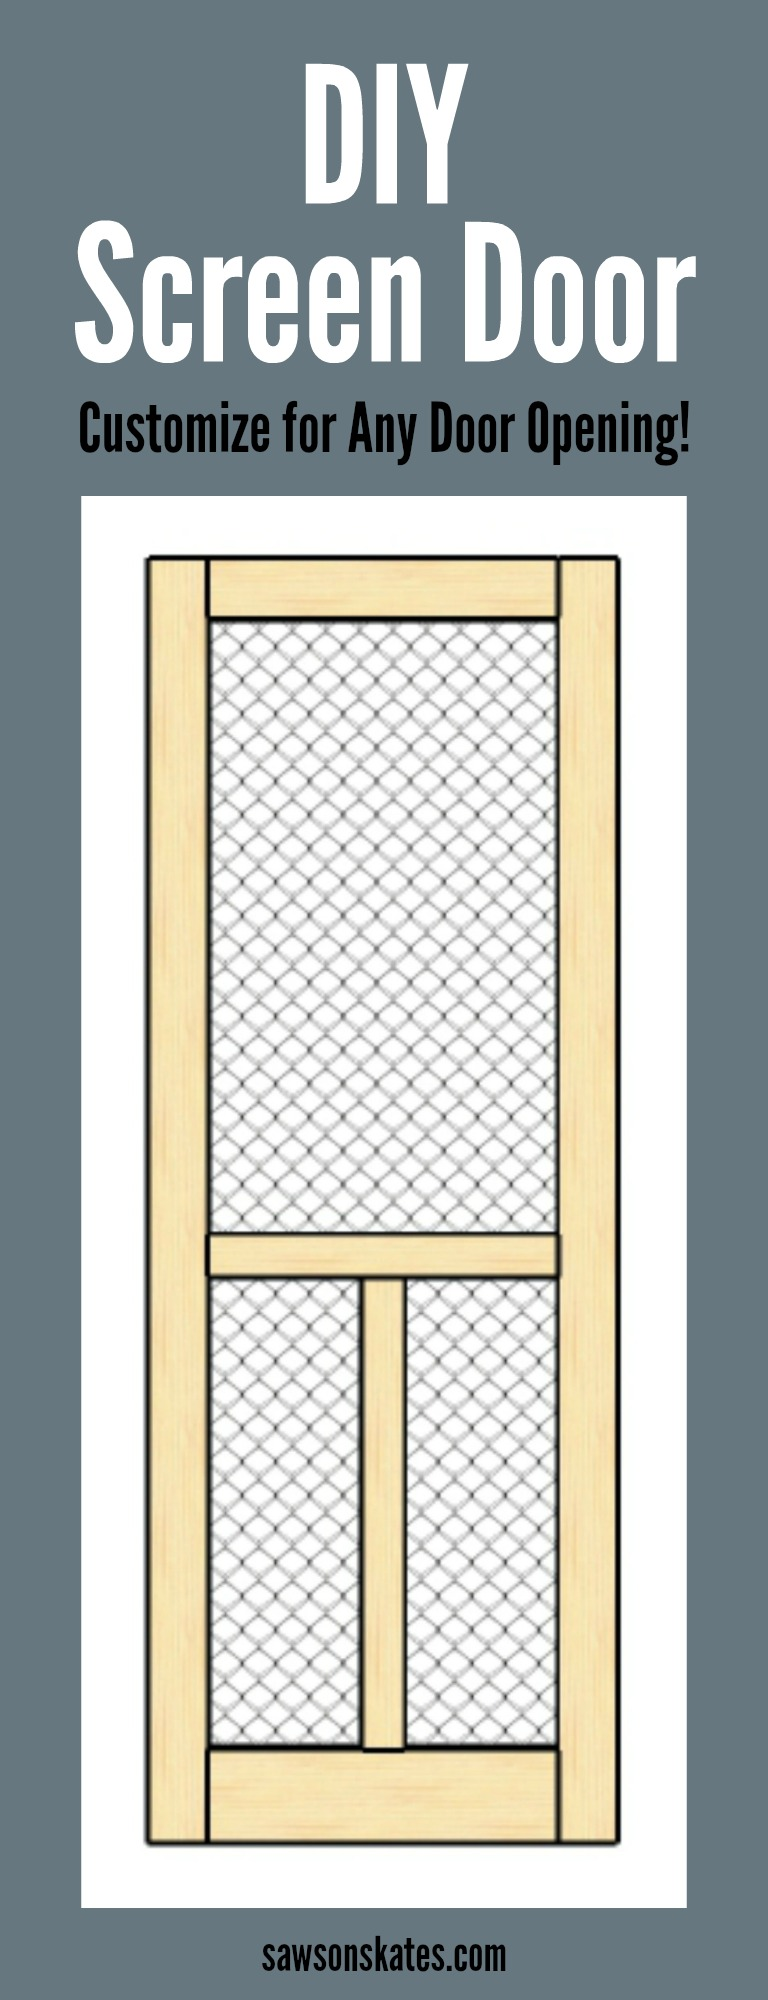 Looking for screen door ideas? DIY your own! This easy to follow plan shows how to build a wooden DIY screen door which can be customized to fit any door opening.